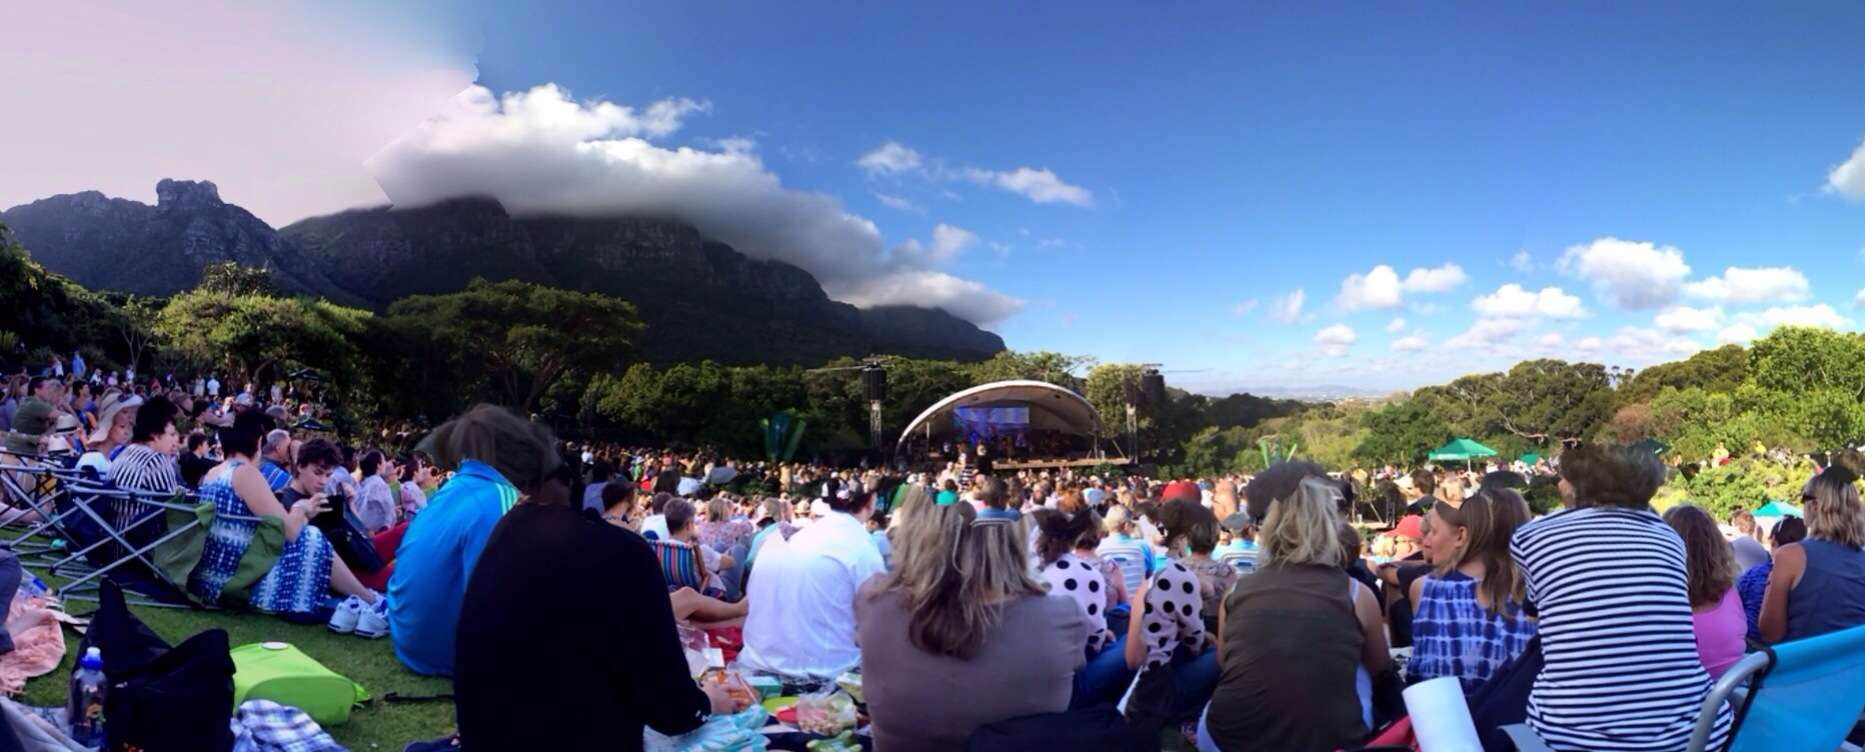 People sitting at garden concert